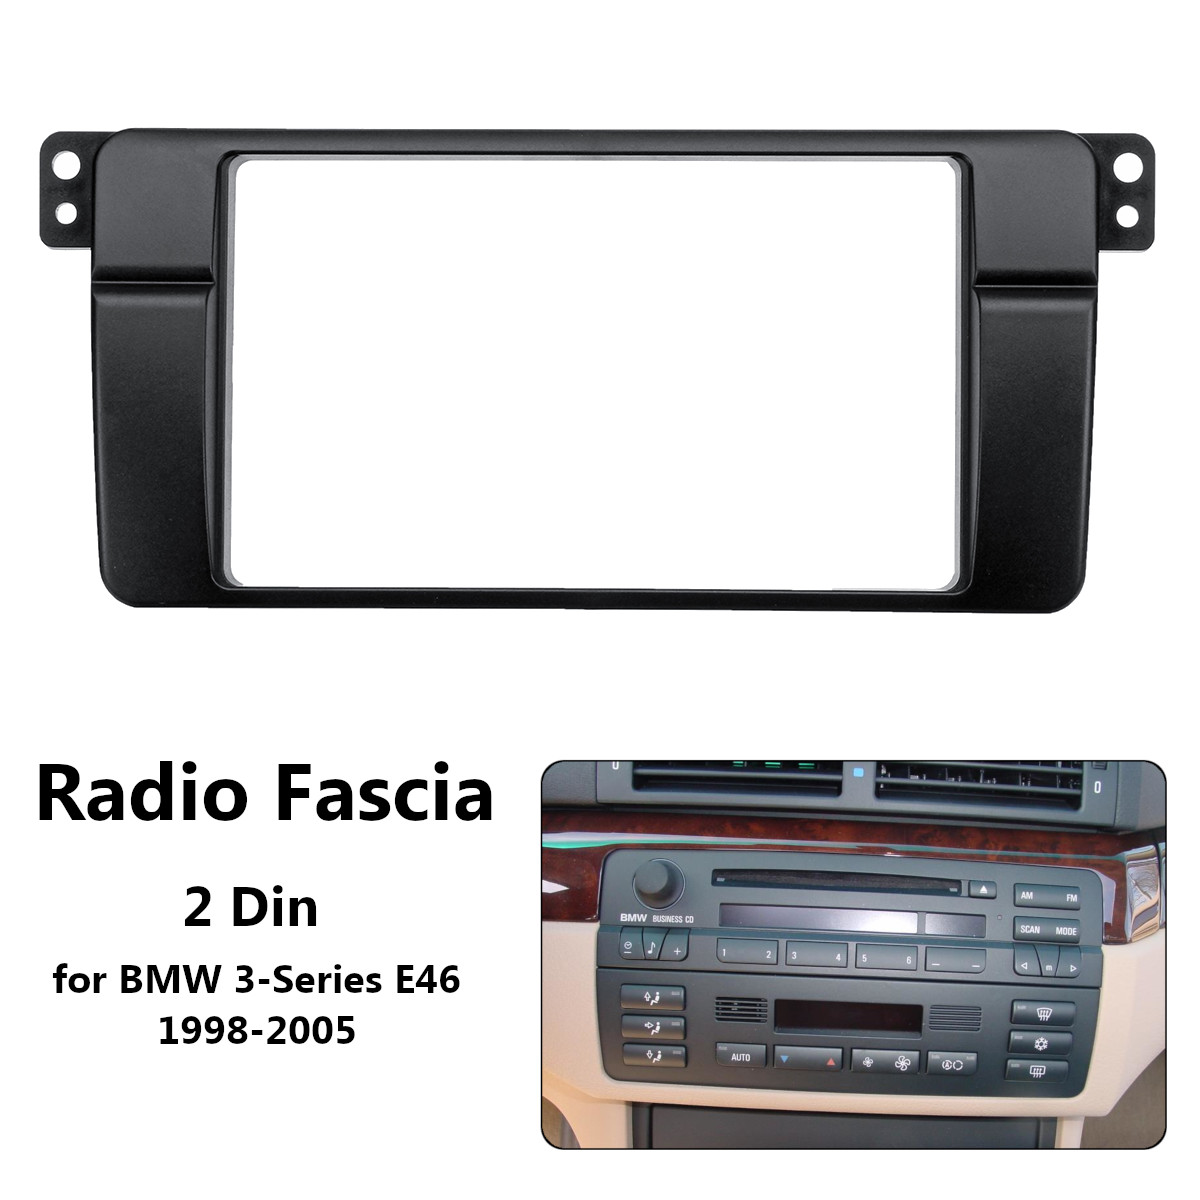 2DIN Car Stereo Fascia Dash CD Trim Installation Kit for BMW